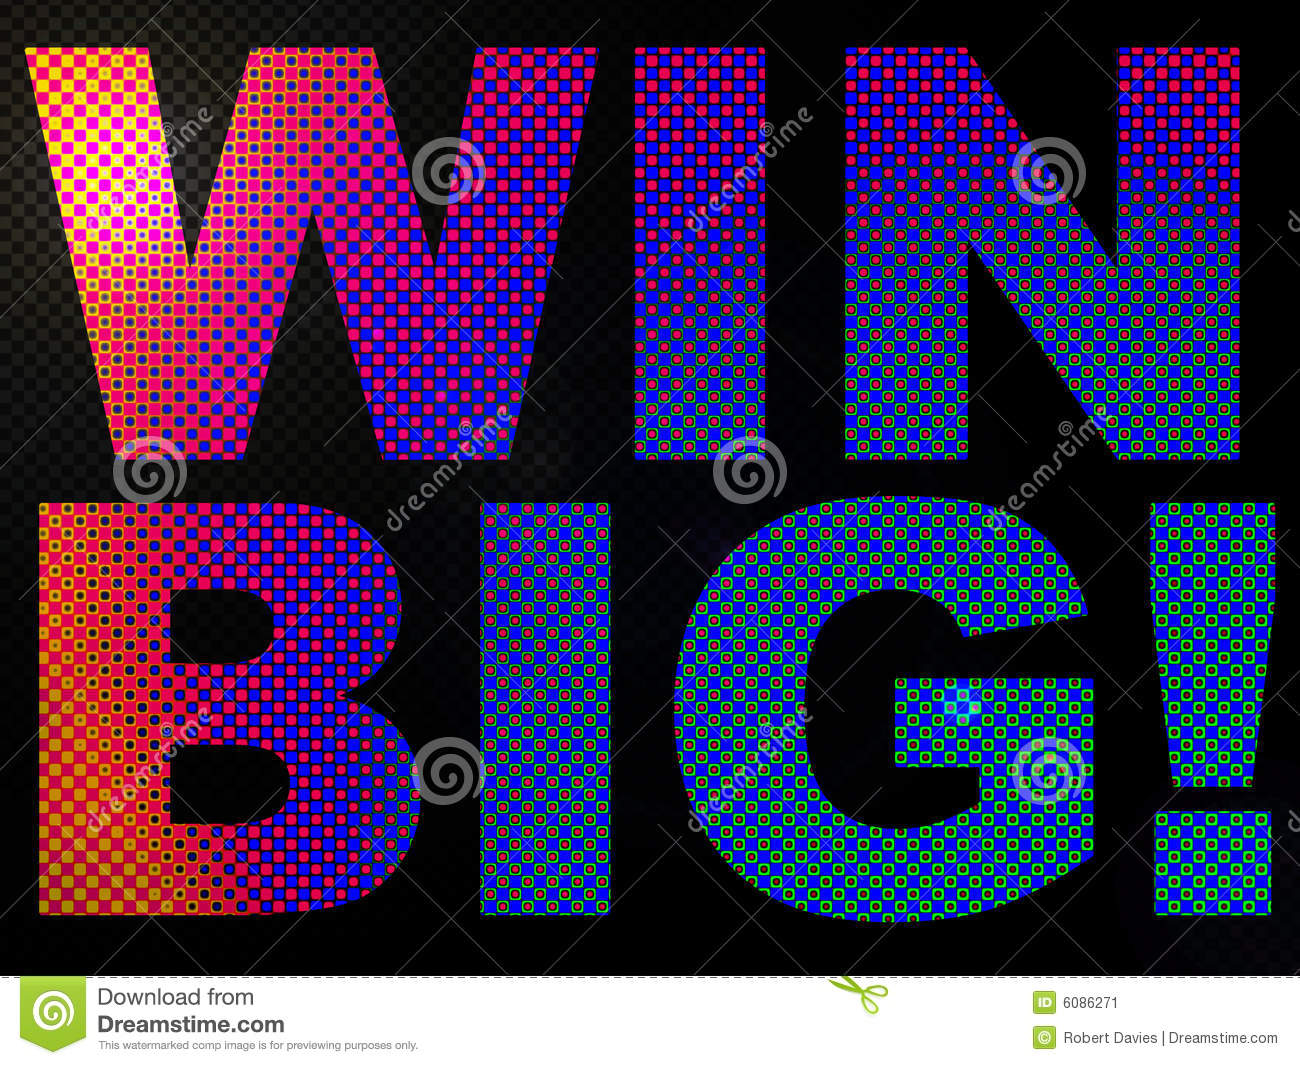 Pink Led Lights >> WIN BIG Prize Sign Lit With LED Lights Stock Image - Image: 6086271